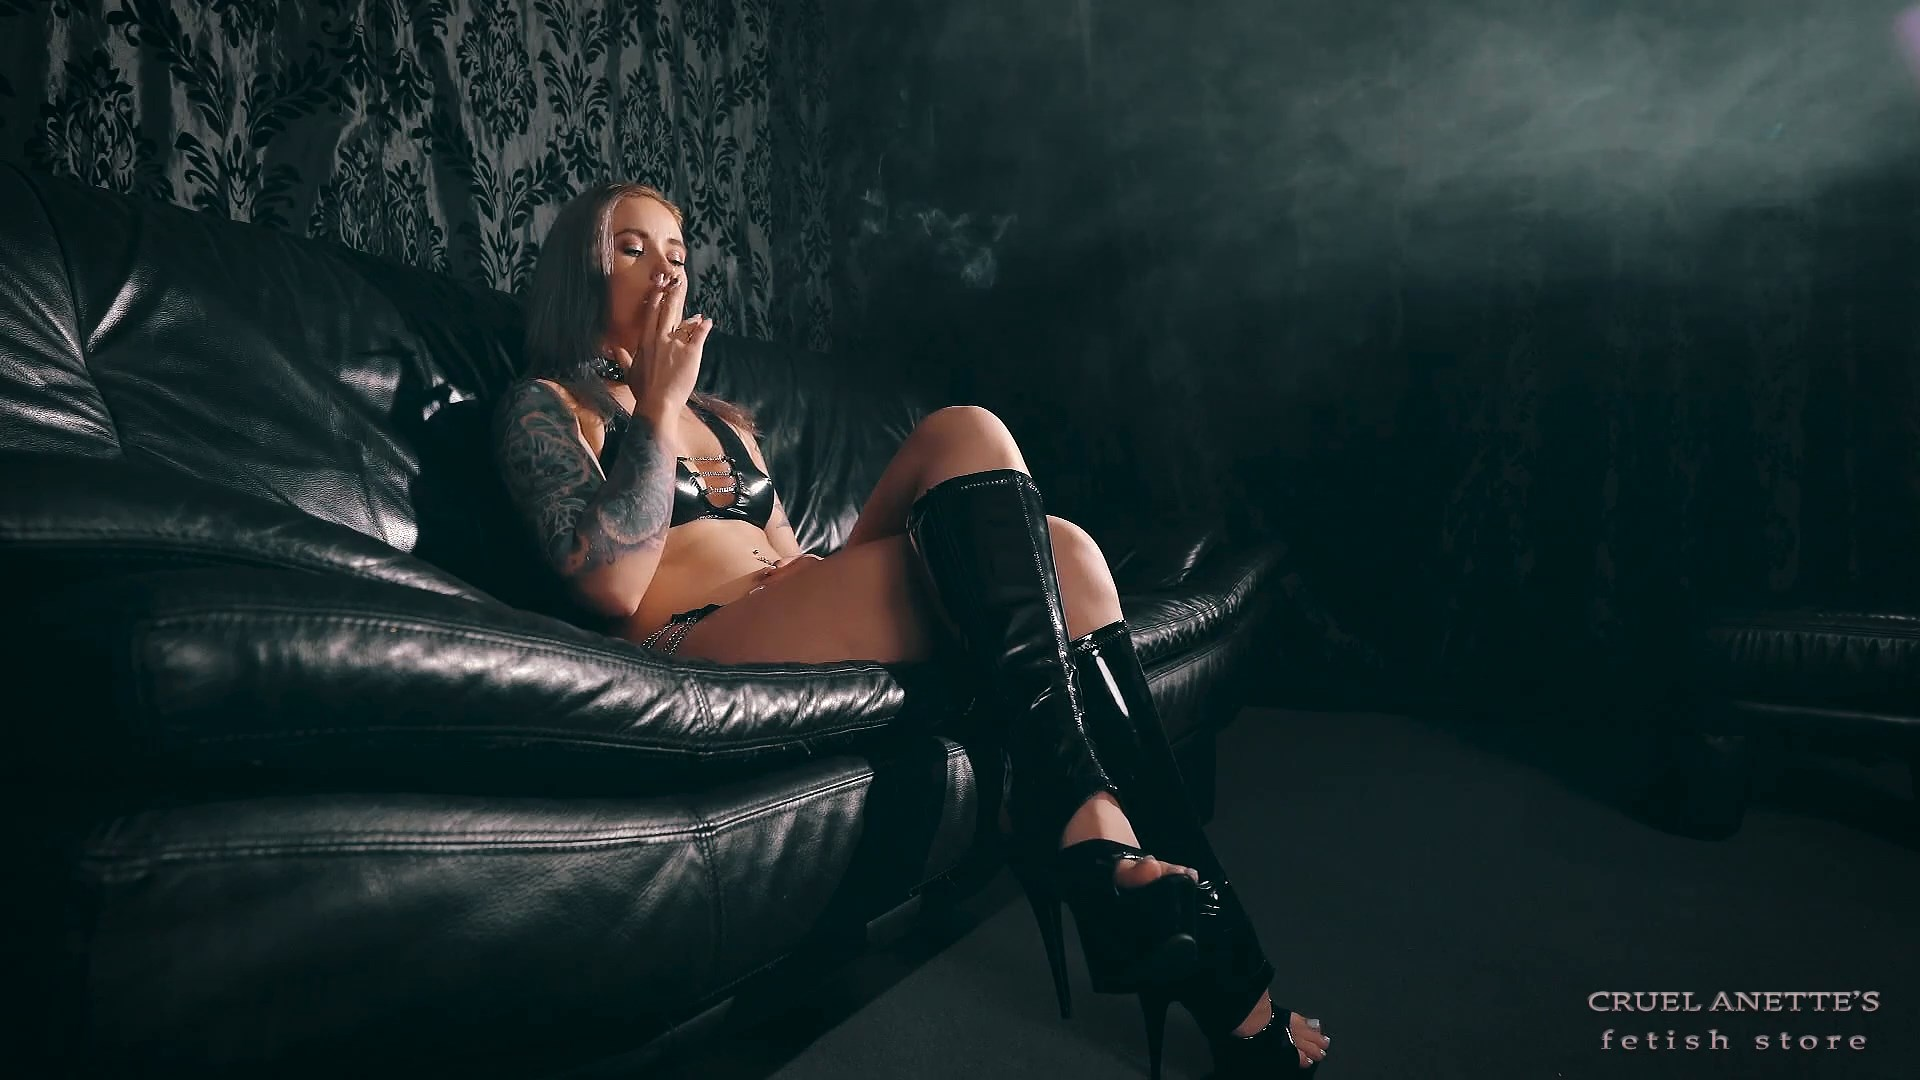 In the black room - CRUEL ANETTES FETISH STORE - FULL HD/1080p/MP4